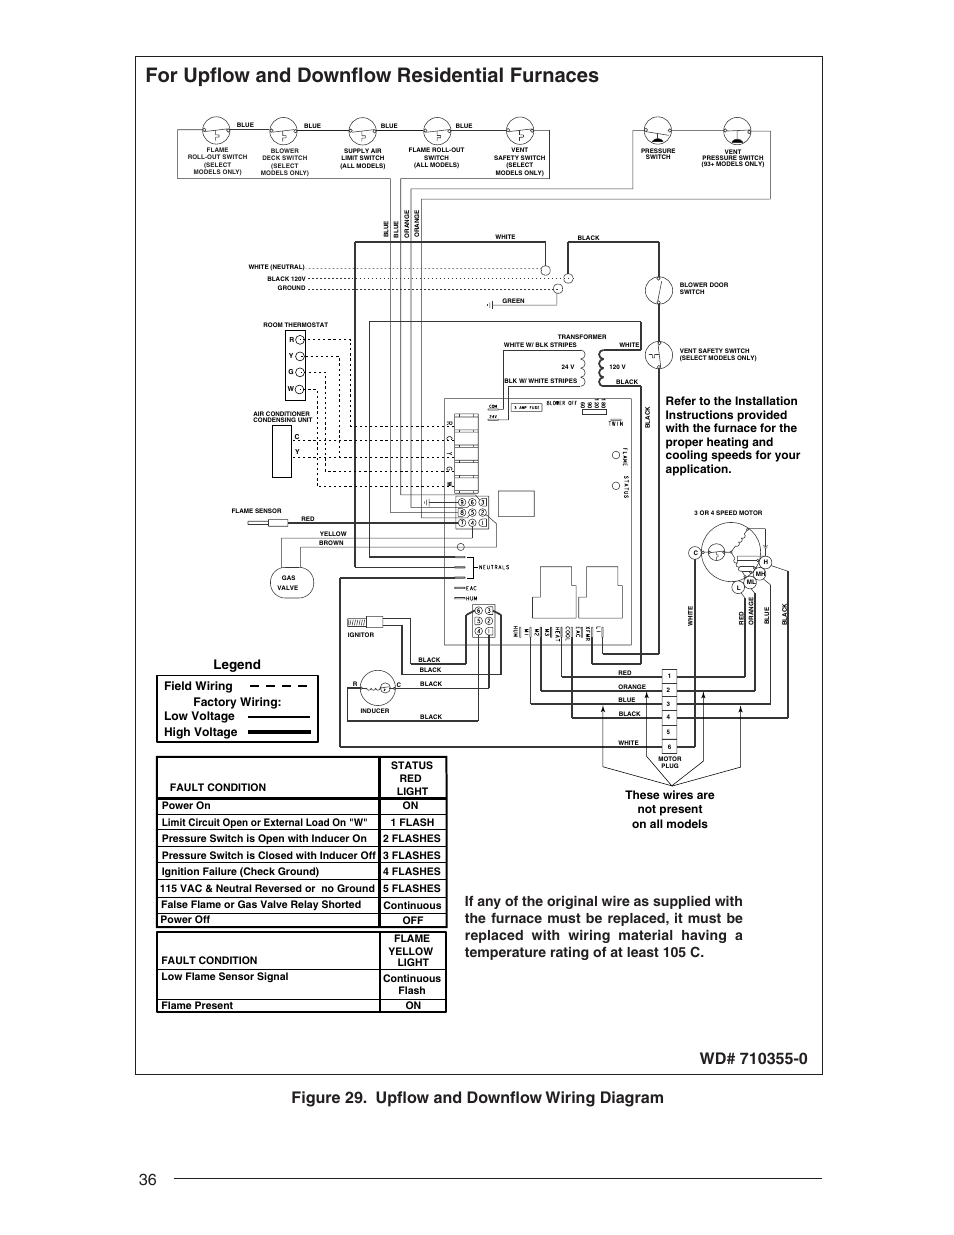 gibson air conditioner wiring diagram gibson air